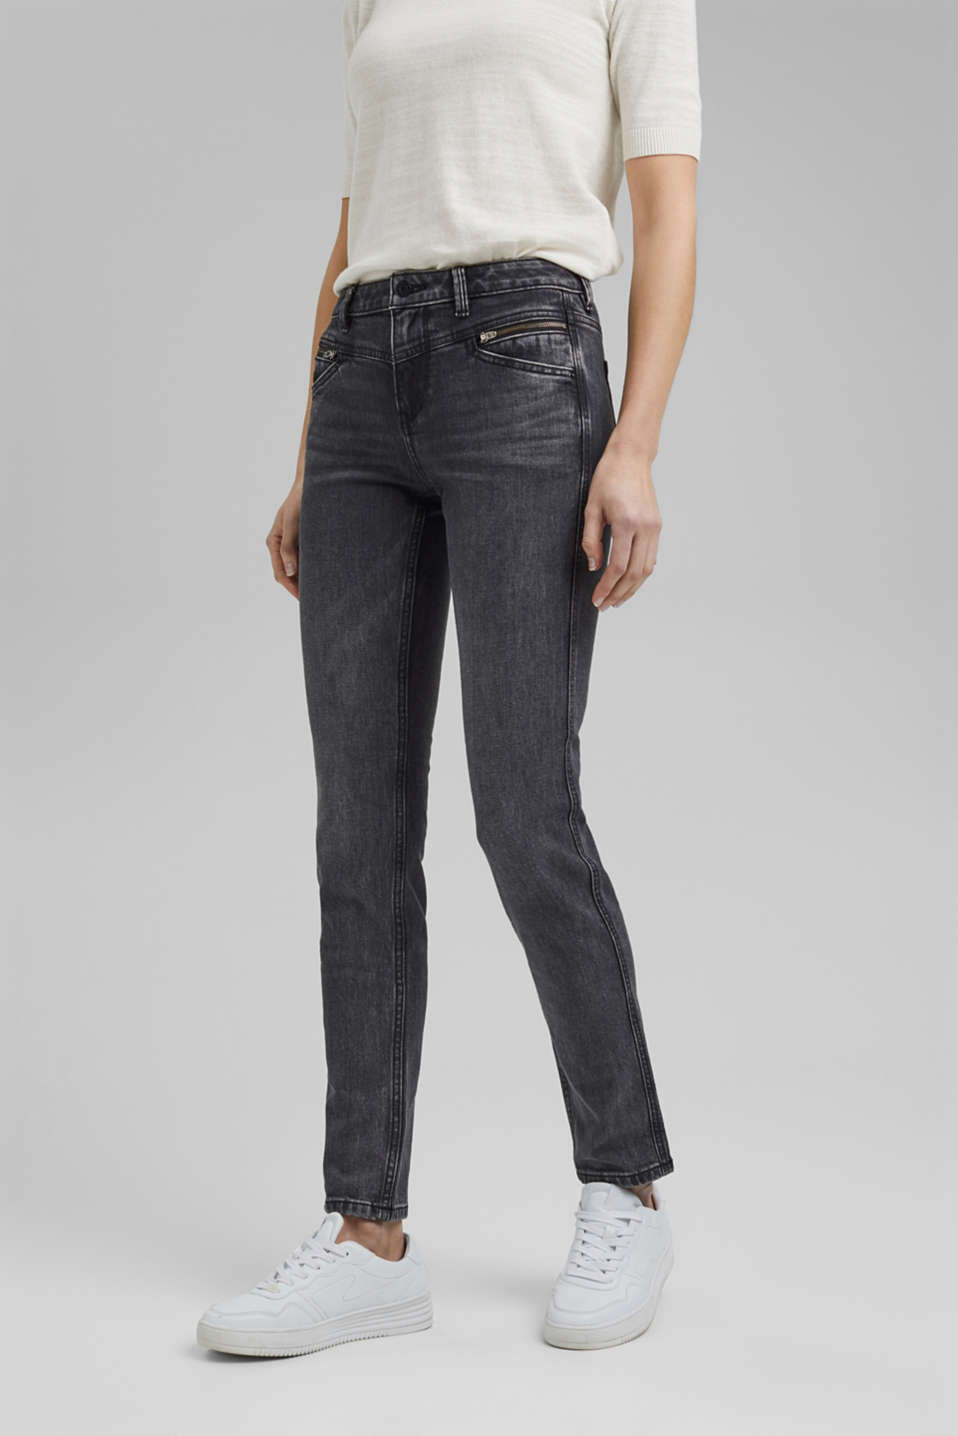 Esprit - Stretch jeans with zip detail